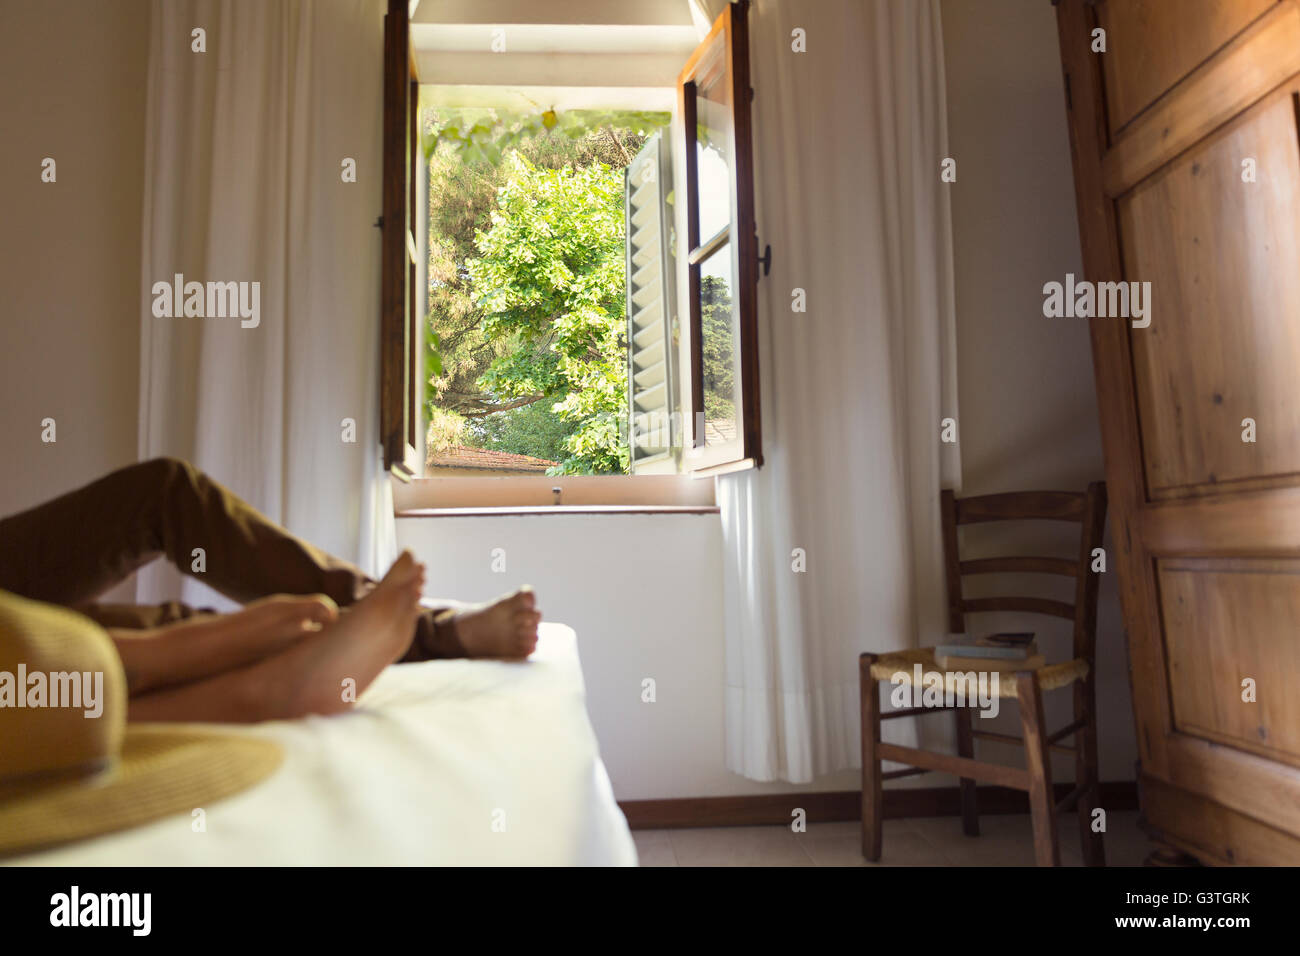 Italy, Couple lying on bed in farmhouse - Stock Image